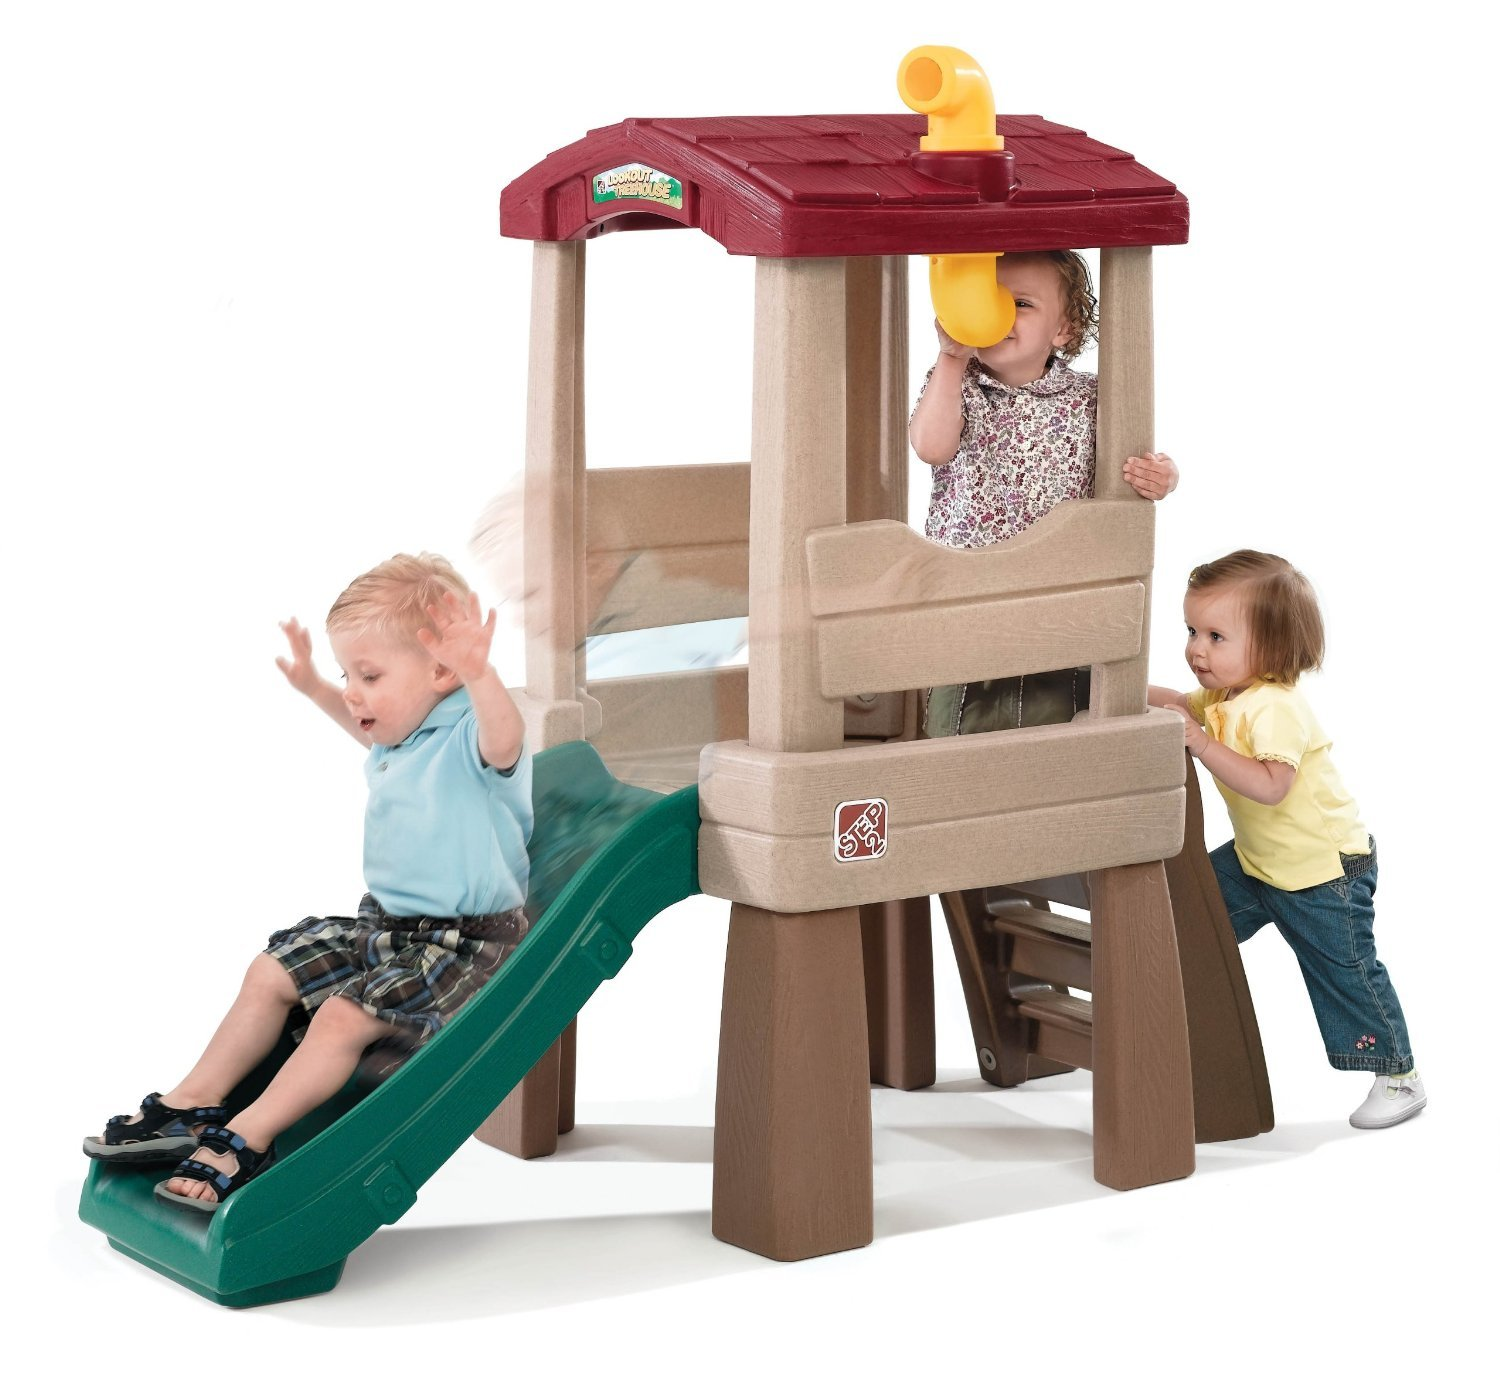 Tot Crawl Climber Slide Ladder Baby Toddler Interactive Play Treehouse Toy Fun by Living Better Now (Image #4)